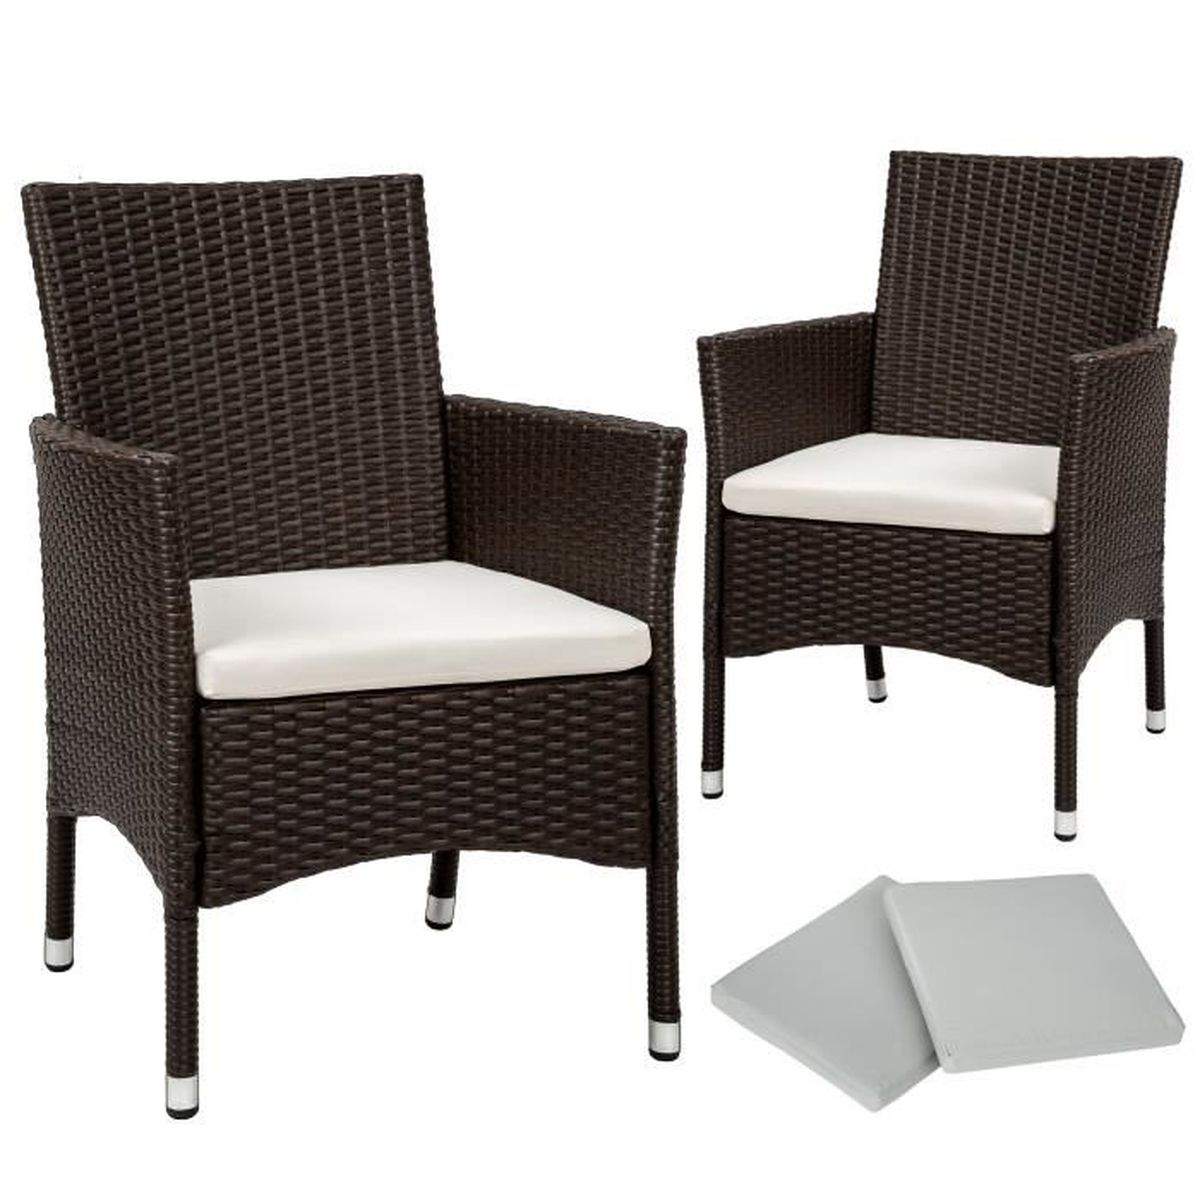 chaises fauteuil jardin resine beige achat vente. Black Bedroom Furniture Sets. Home Design Ideas